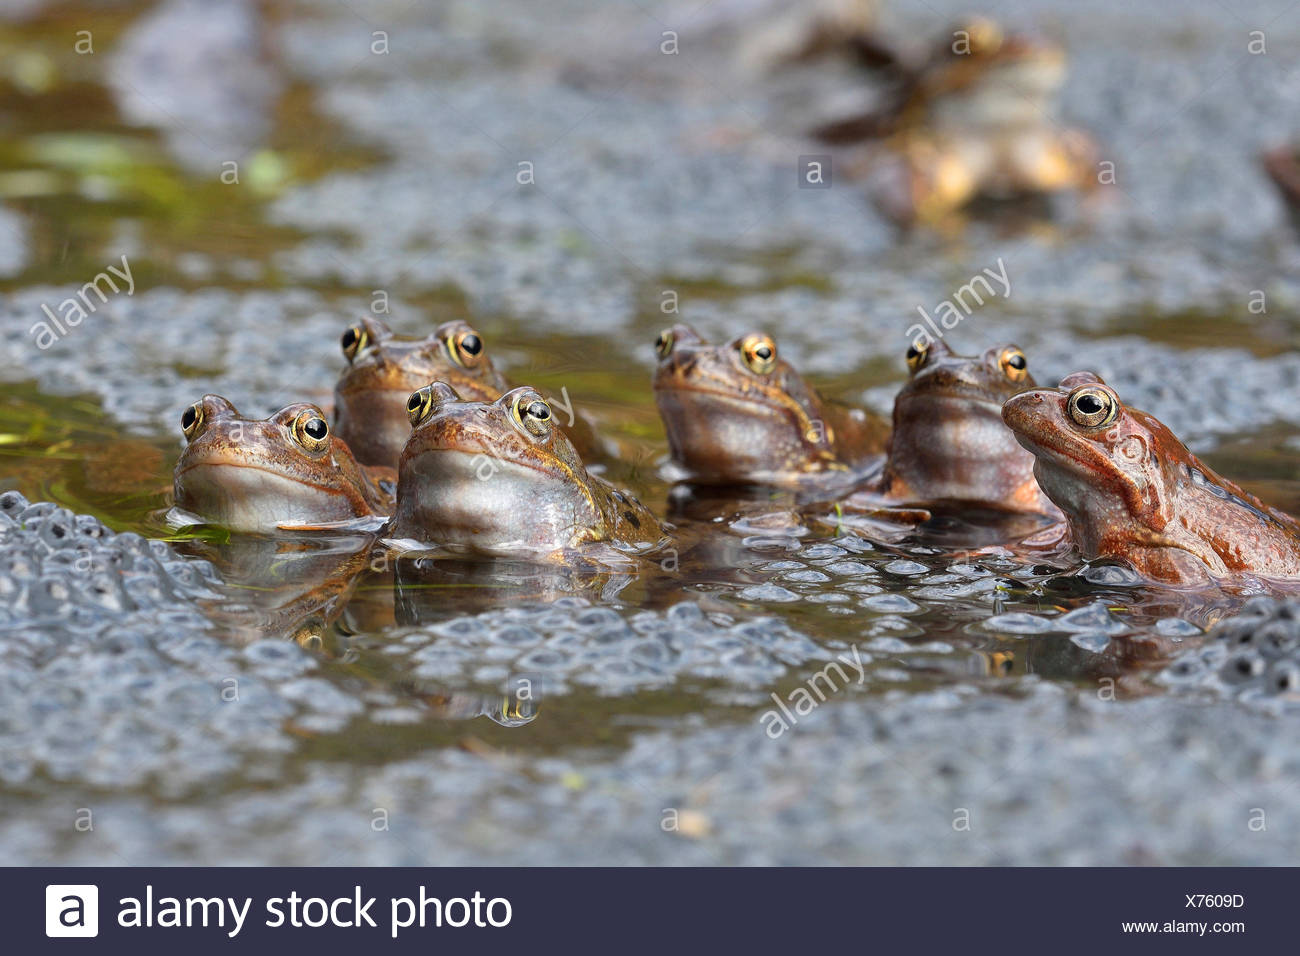 common frog, grass frog (Rana temporaria), sitting in water with eggs, Austria, Burgenland, Neusiedler See National Park - Stock Image